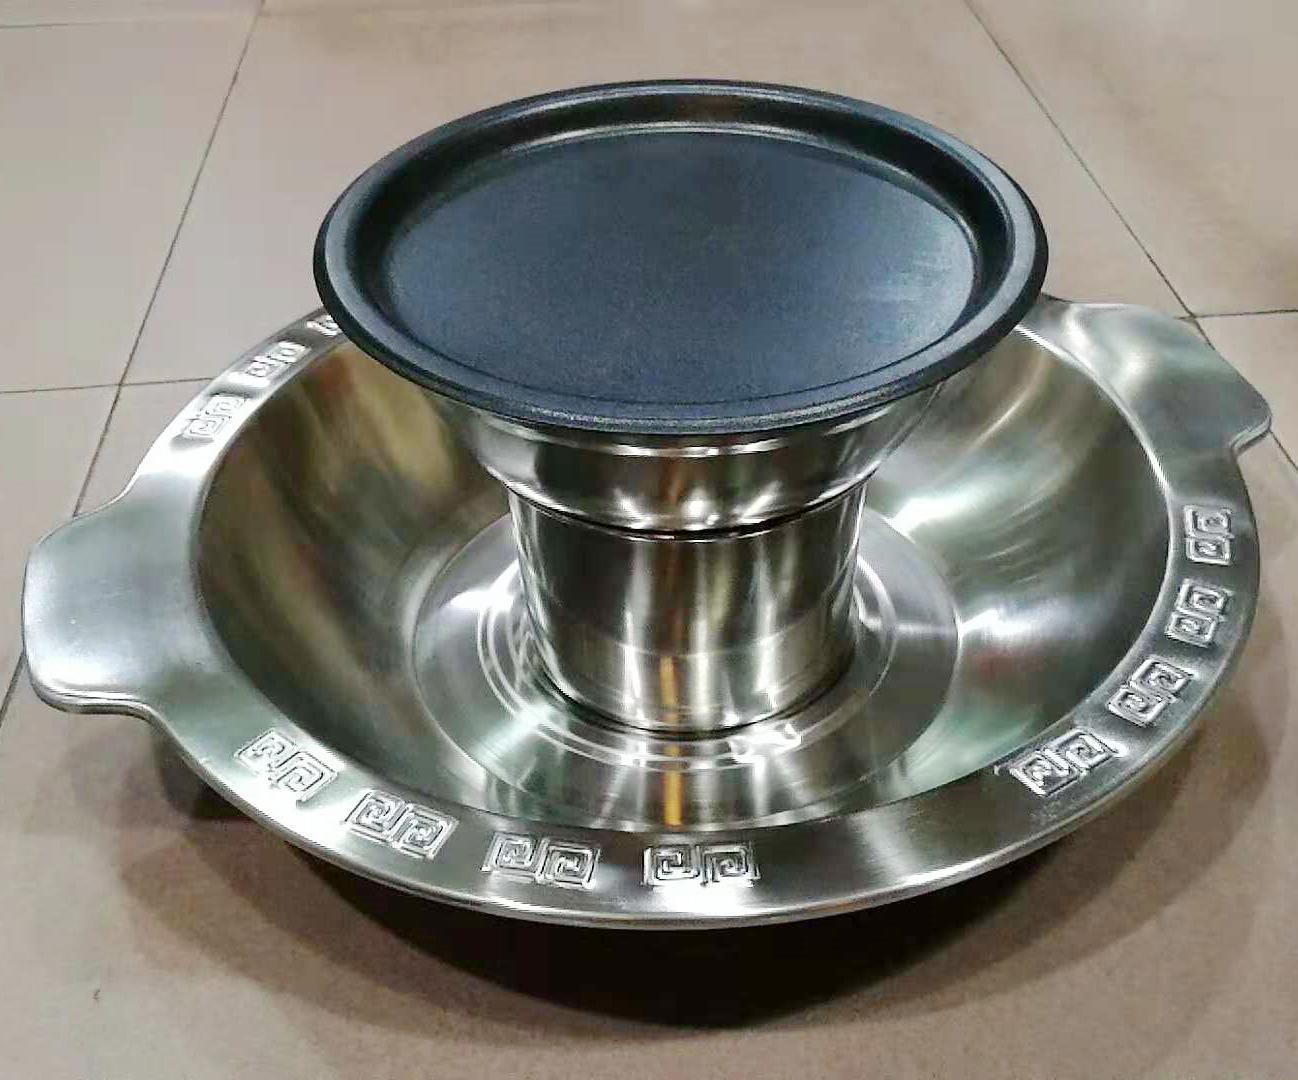 Stainless Steel 2 Layer Chafing Shabu Shabu Hot Oot And BBQ Grill For Serving 1